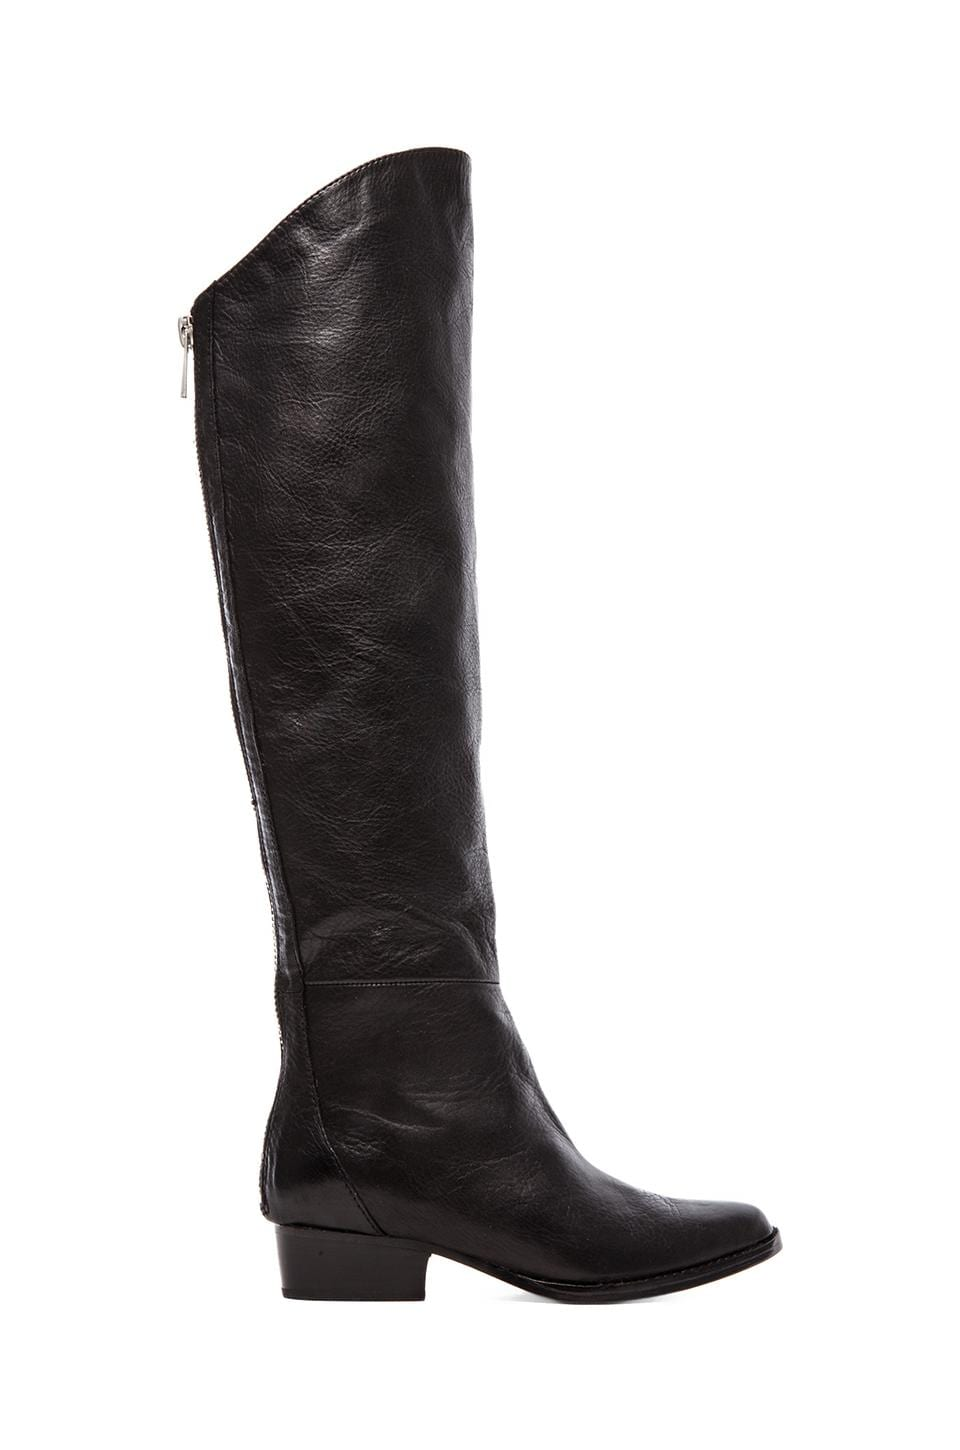 Dolce Vita Daroda Boot in Black